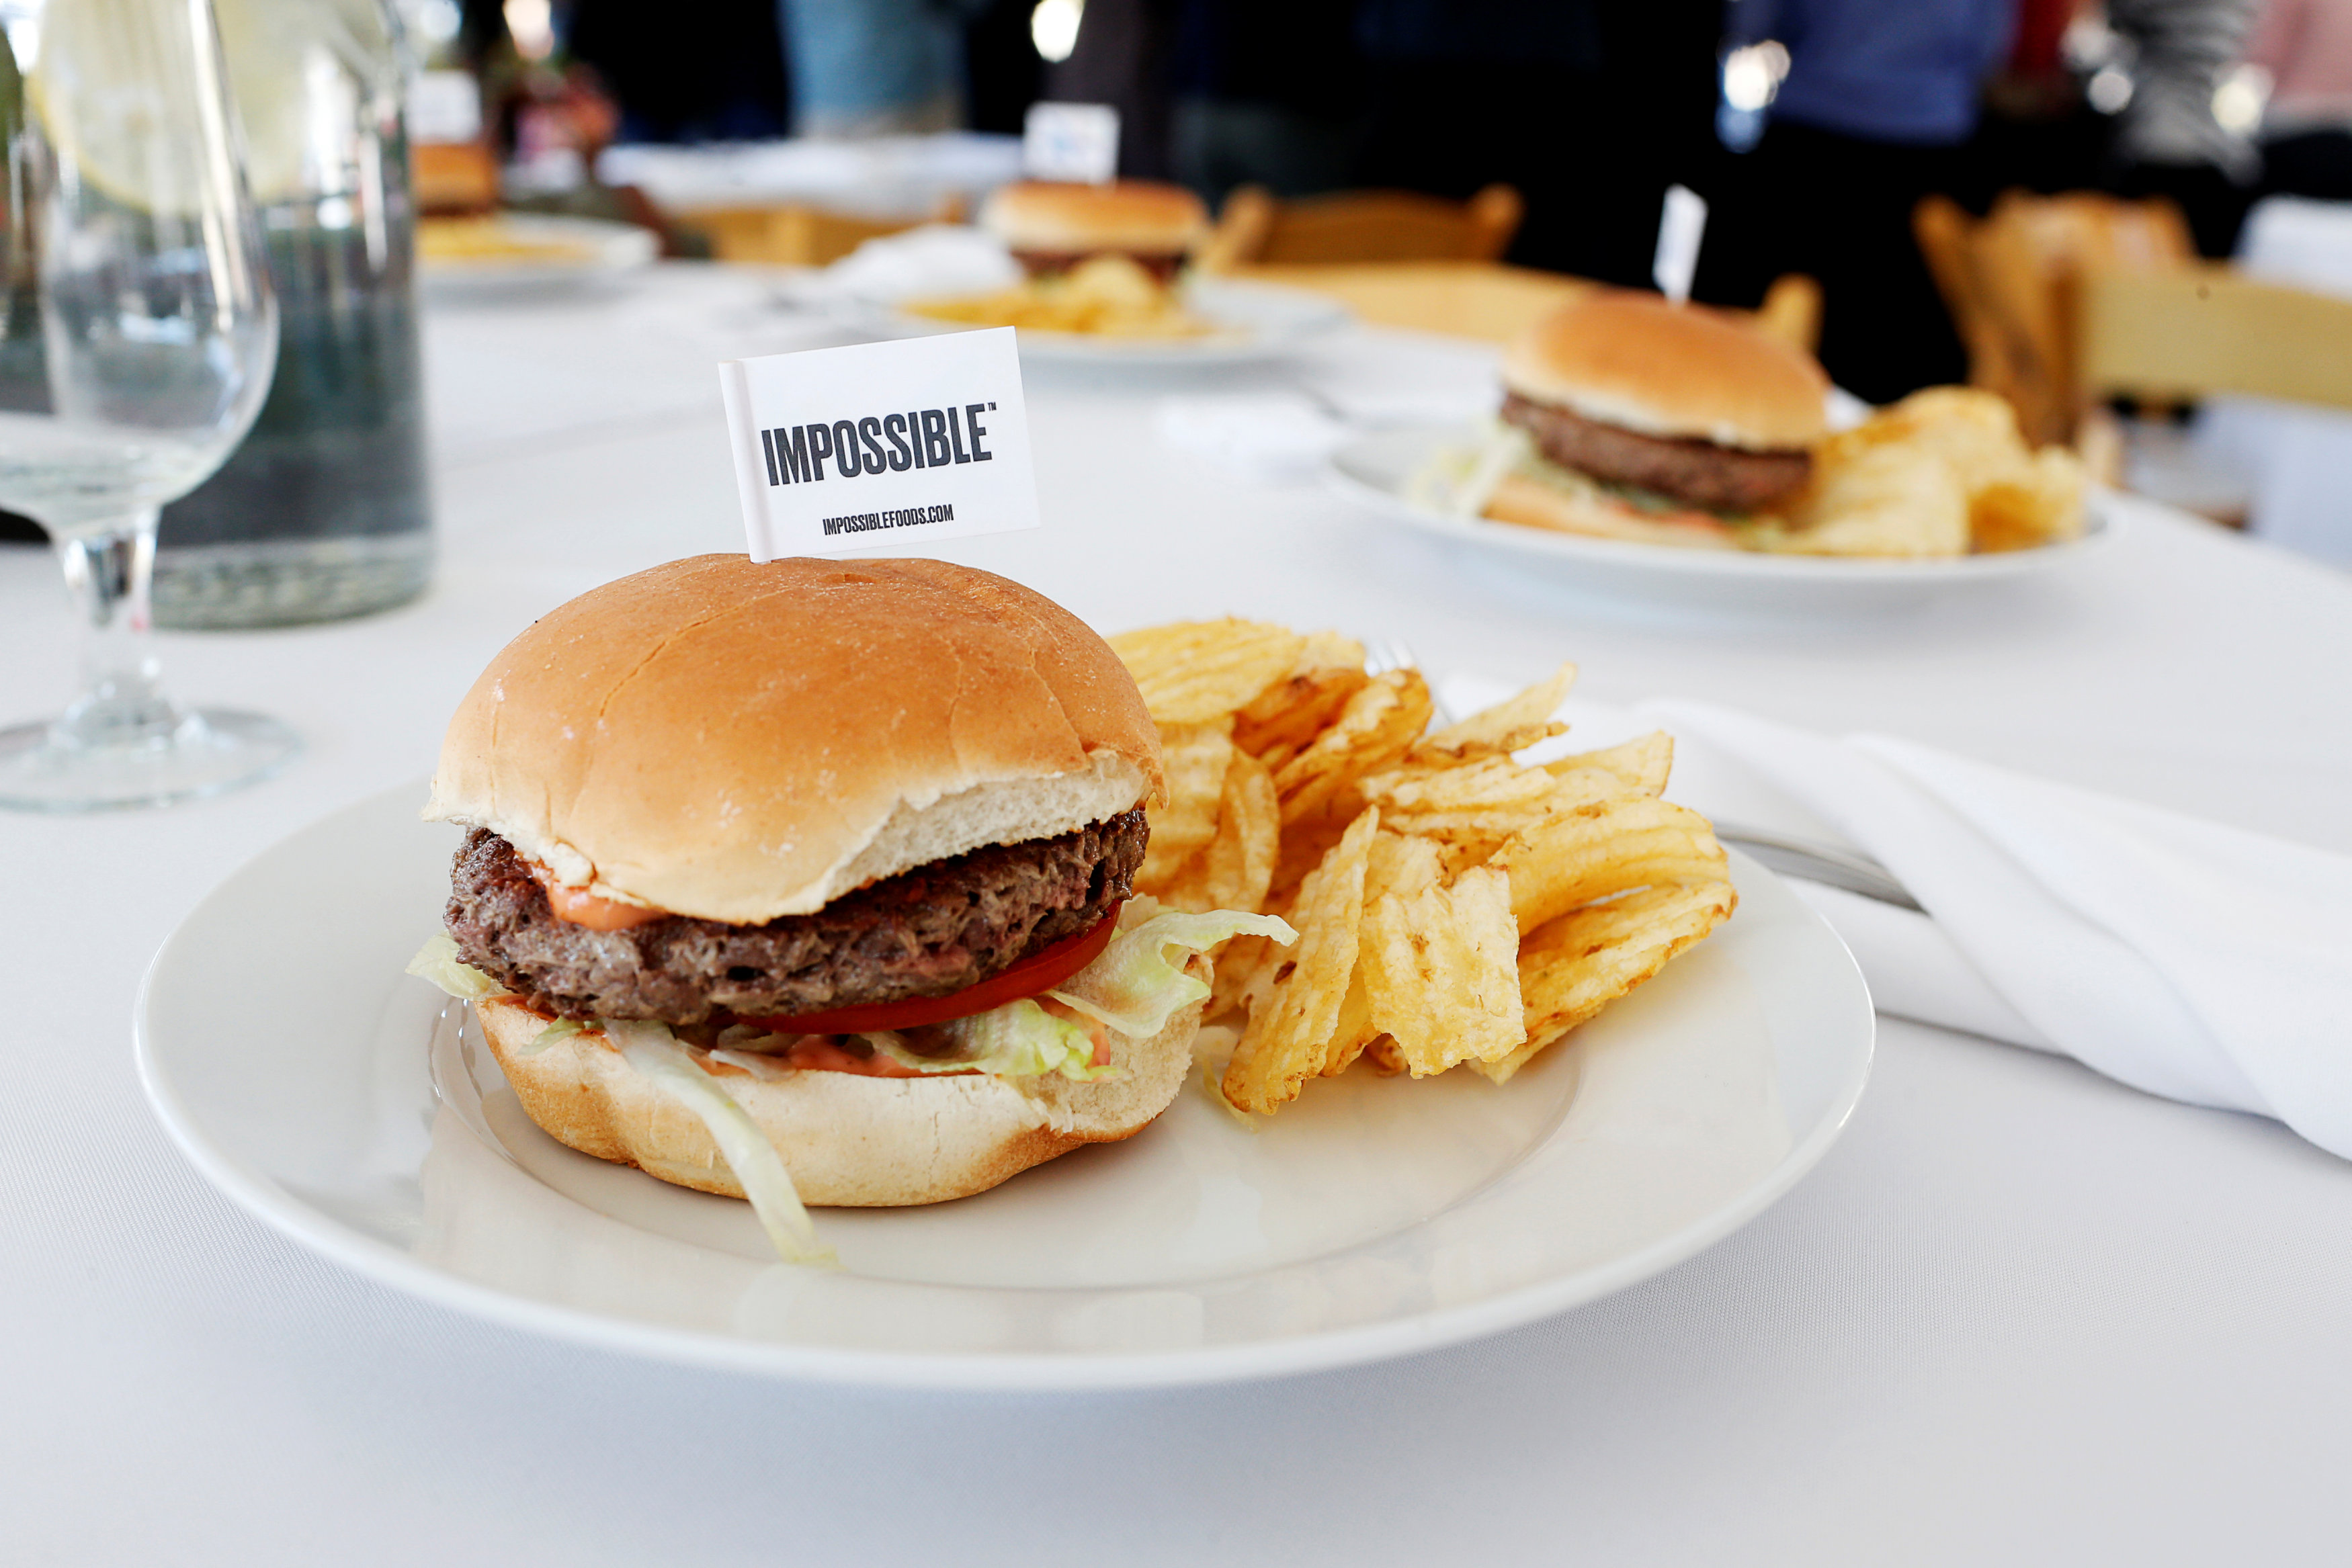 The completed plant-based hamburger is displayed during a media tour of Impossible Foods labs and processing plant in Redwood City, California, U.S. October 6, 2016. Picture taken October 6, 2016. REUTERS/Beck Diefenbach